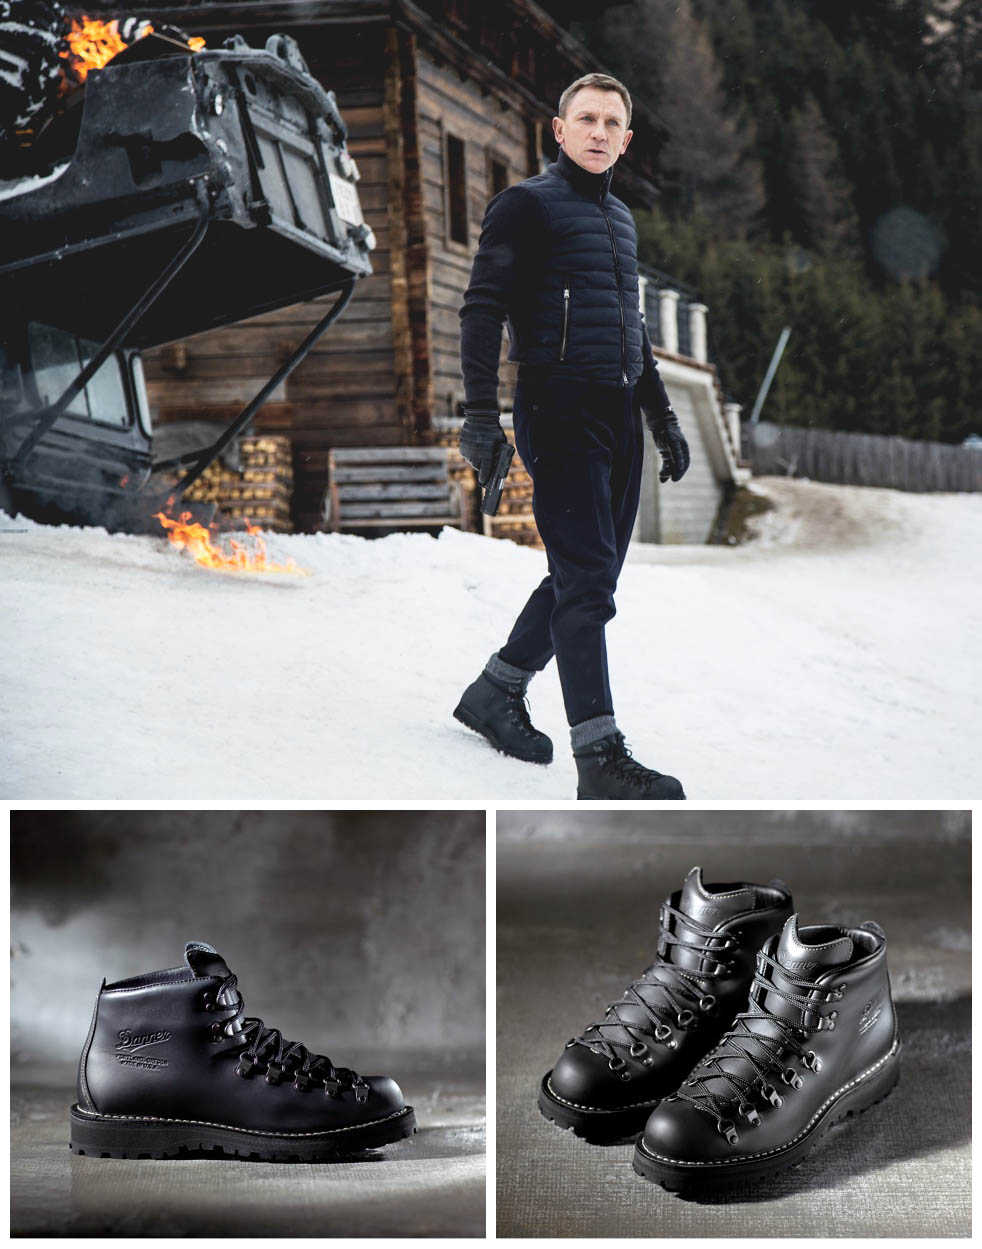 James Bond Boots for Specter by DANNER. #boots #specter #jamesbond #007 #menswear